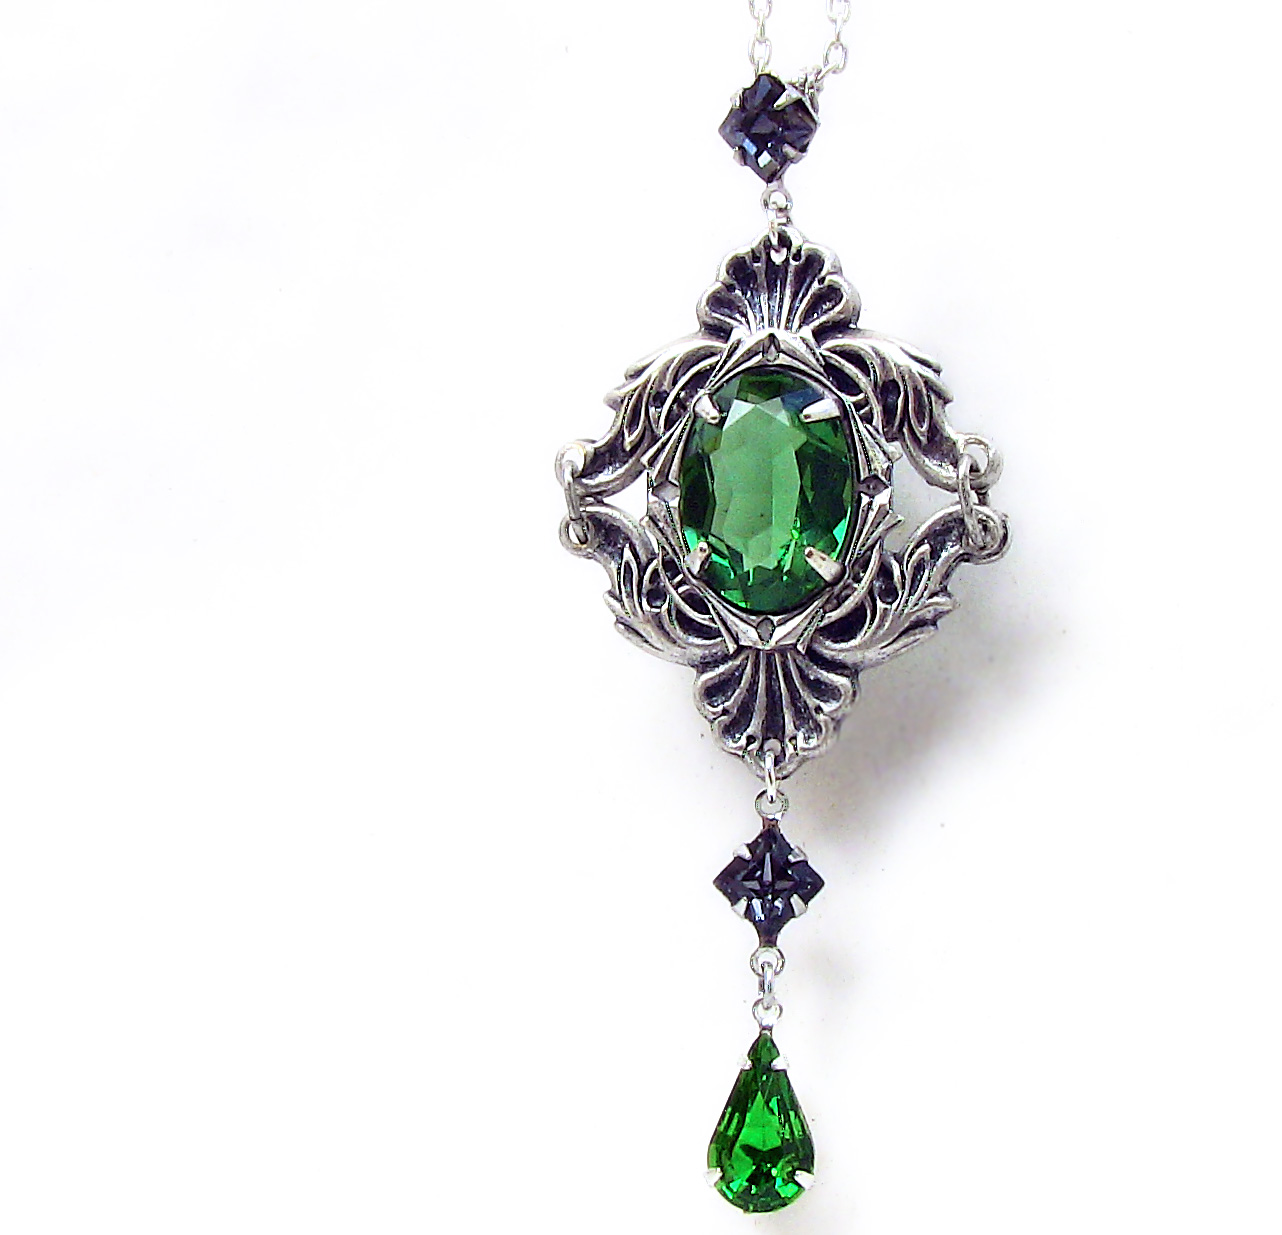 Emerald Green Necklace 1 by Aranwen